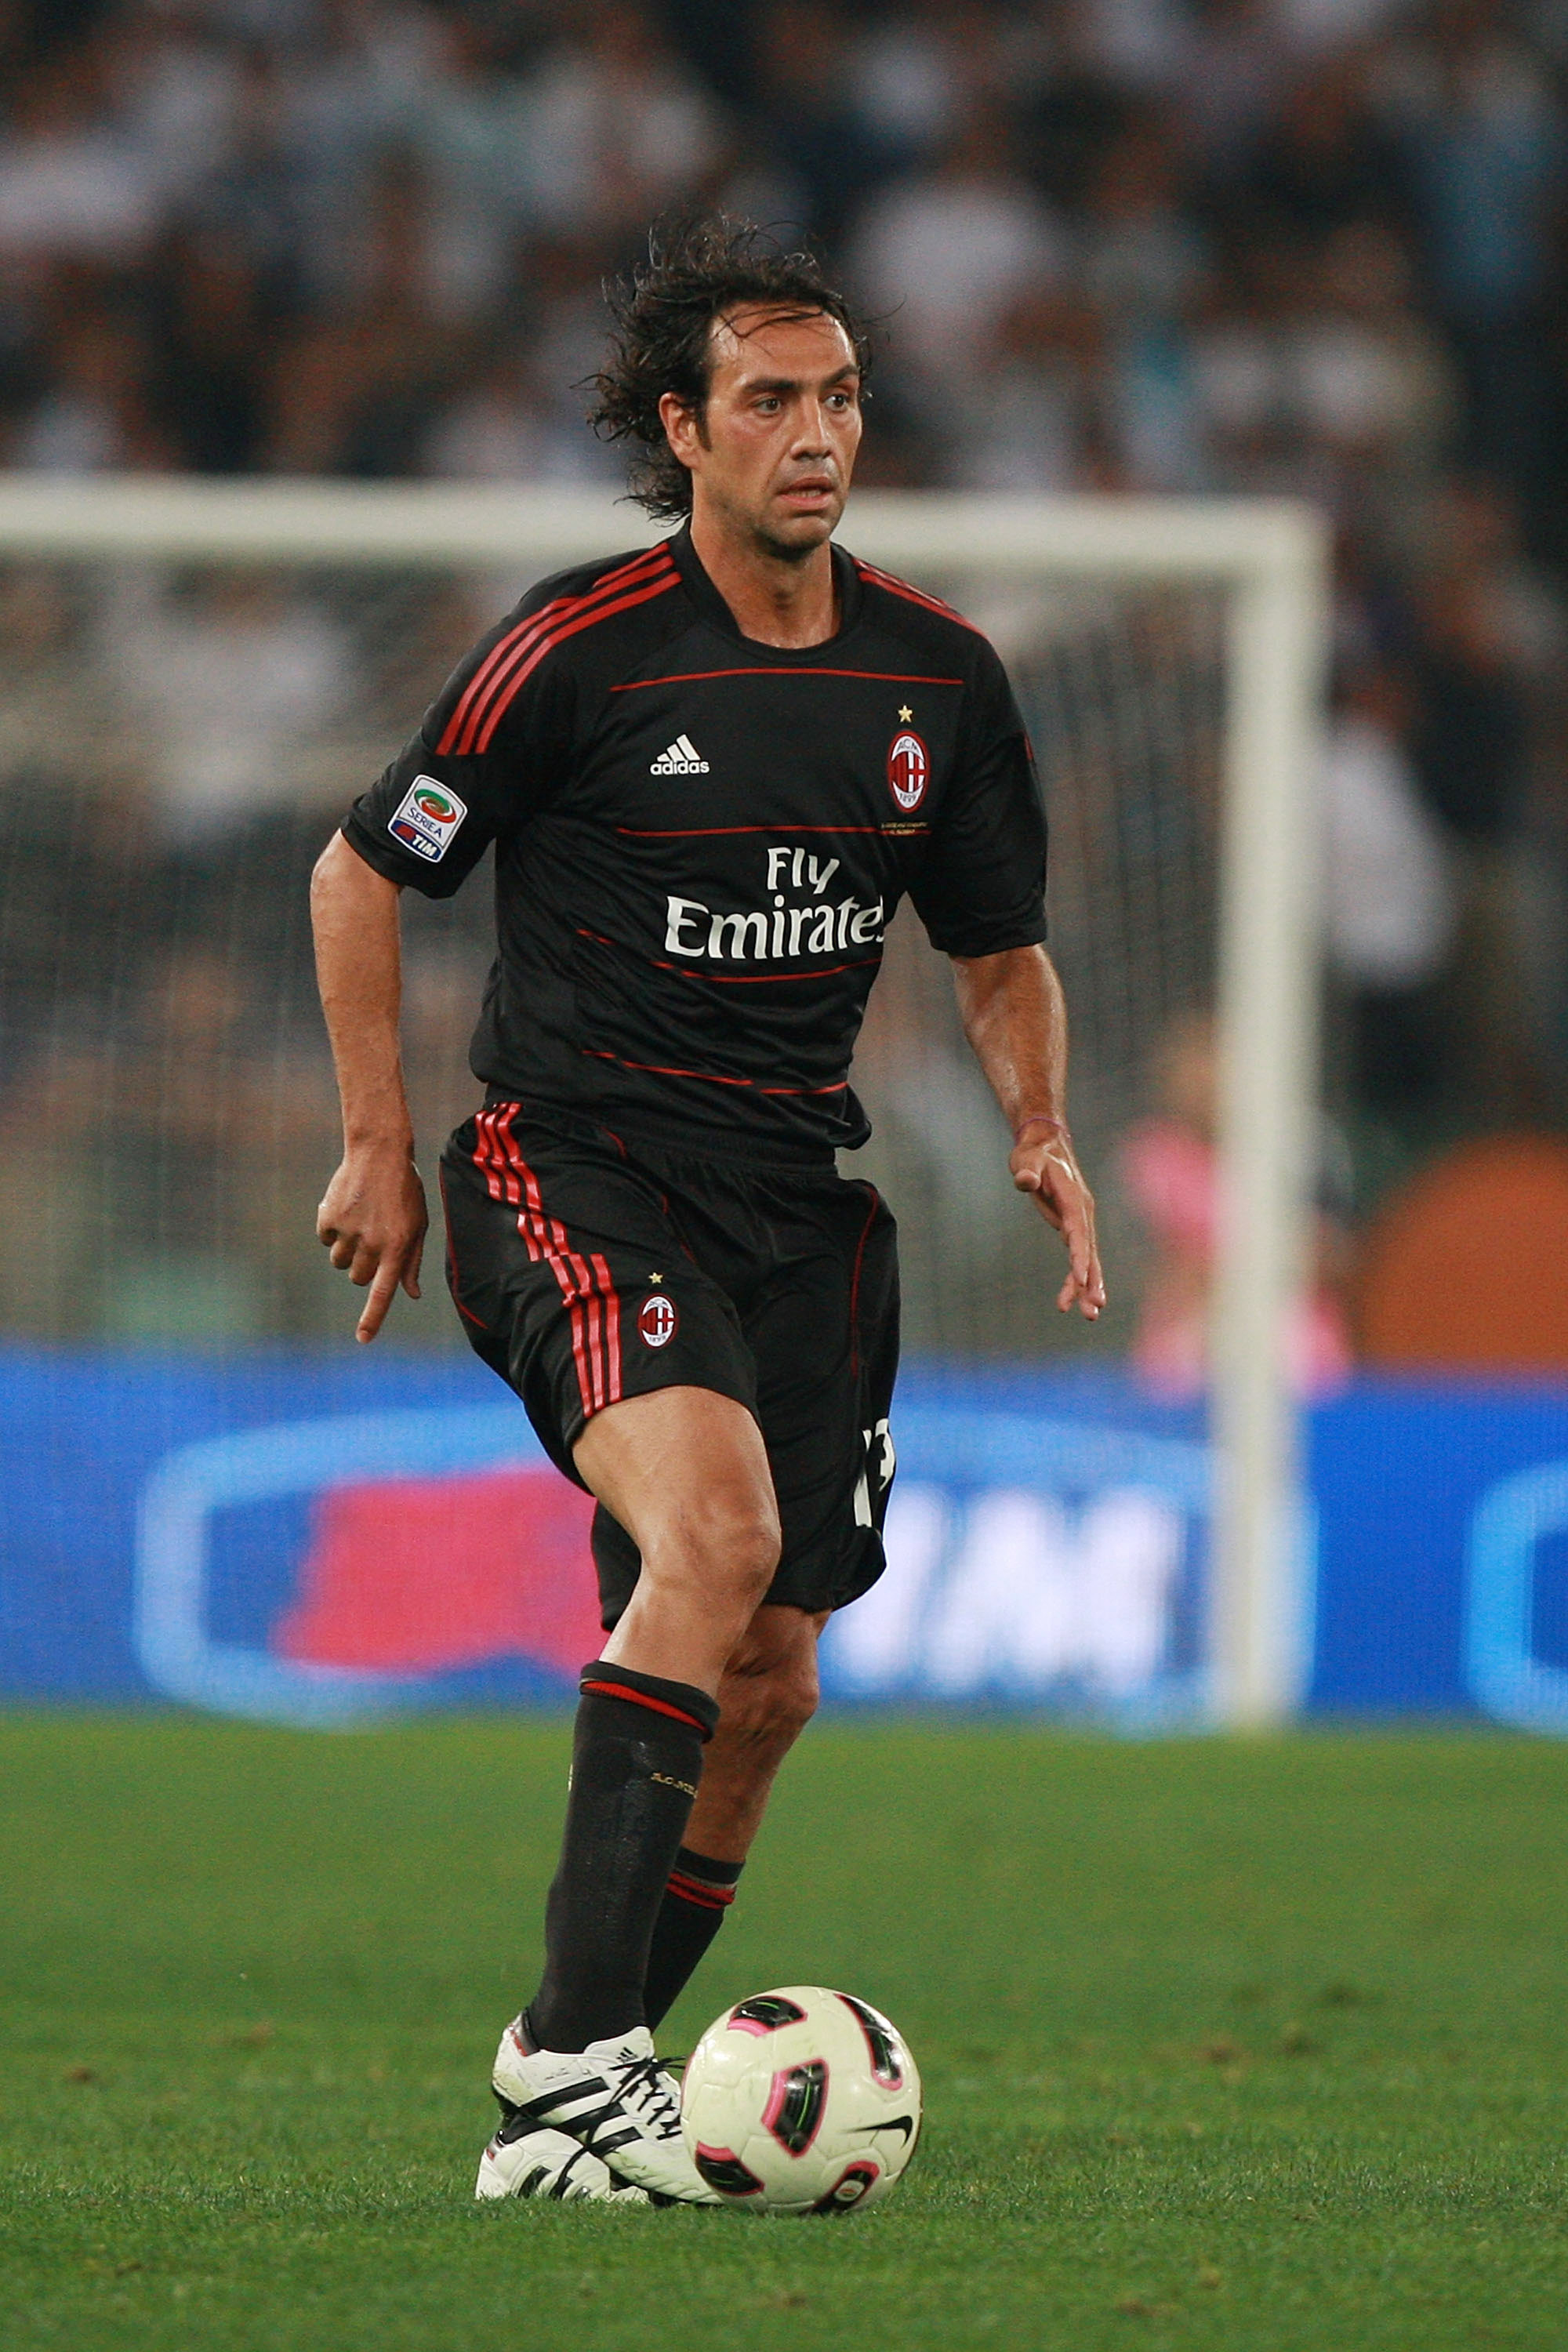 ROME - SEPTEMBER 22:  Alesandro Nesta of AC Milan in action during the Serie A match between SS Lazio and AC Milan at Stadio Olimpico on September 22, 2010 in Rome, Italy.  (Photo by Paolo Bruno/Getty Images)